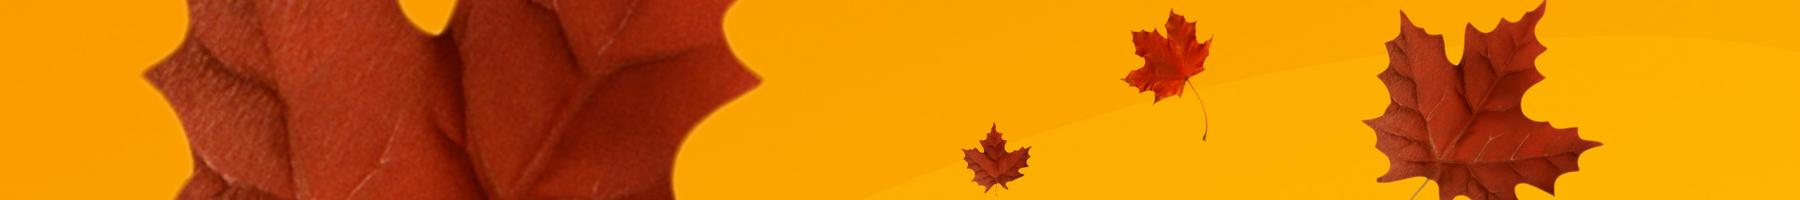 Maple leaves on yellow background